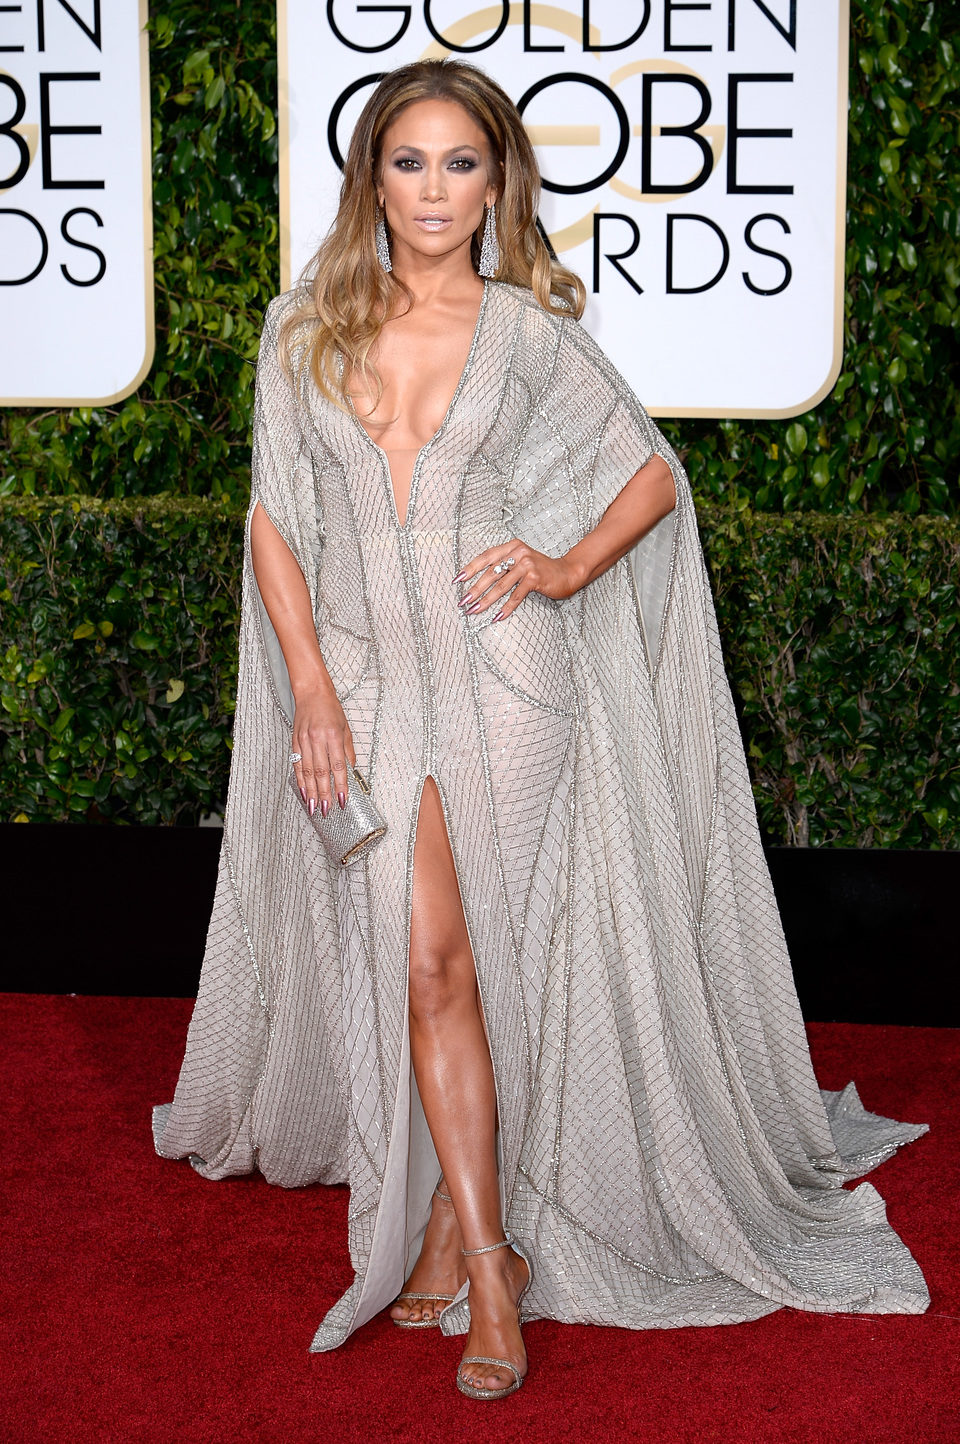 Jennifer Lopez at the Golden Globes 2015 red carpet